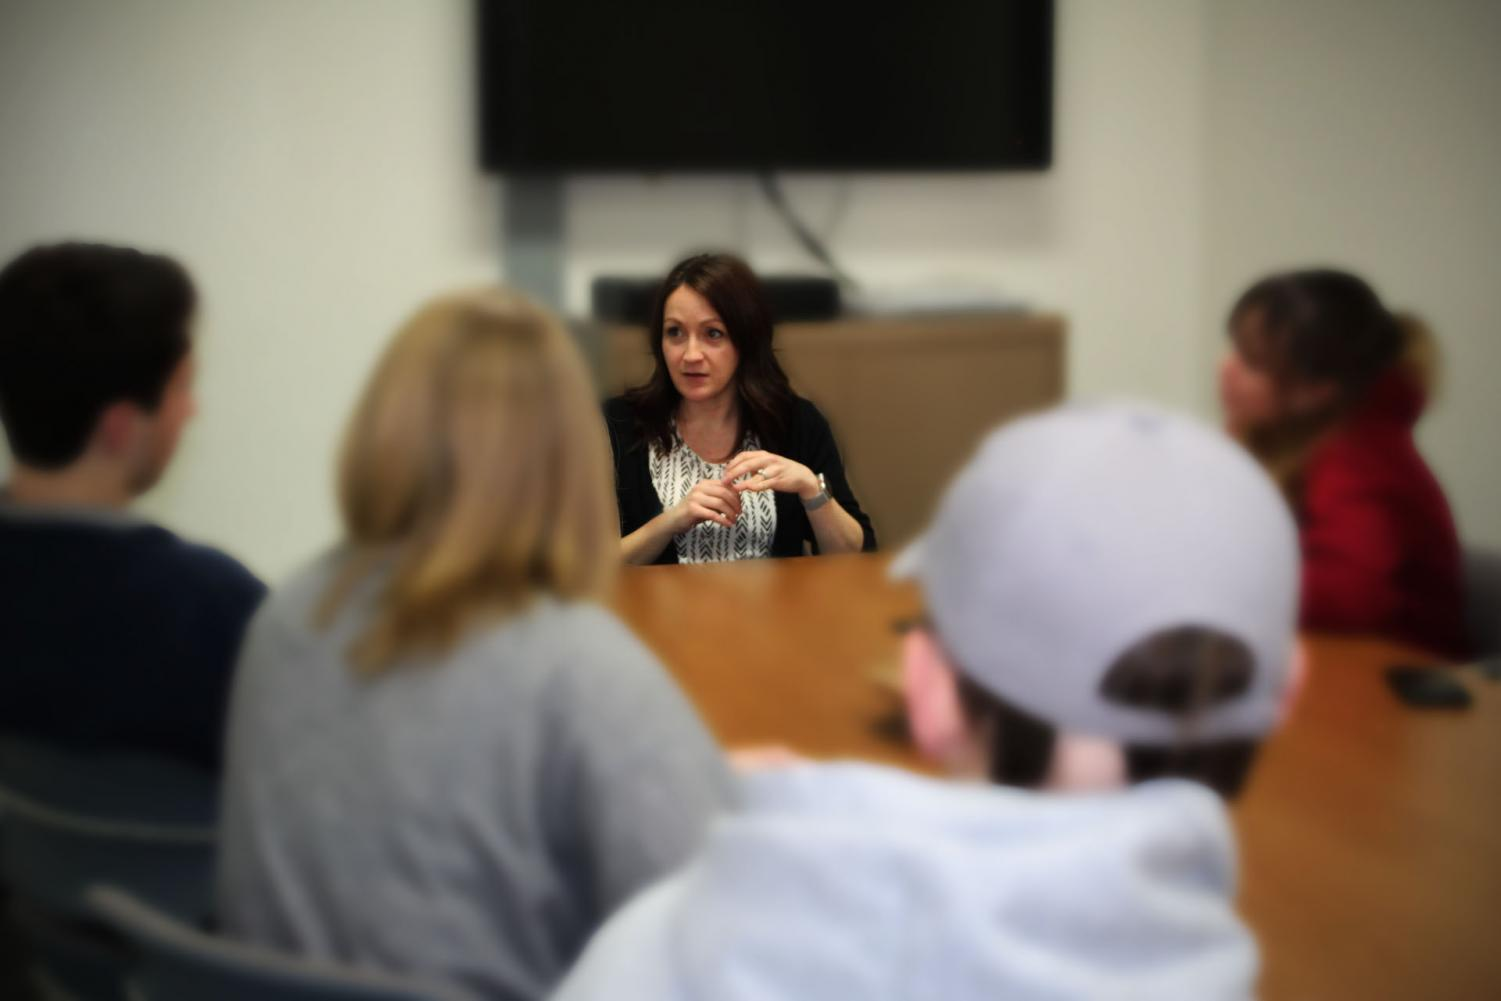 Mrs. Emily Eichmeier, one of the school's social workers, runs some of the various student support groups offered. The groups give students a safe environment where they are able to talk and relate to other students who may be experiencing similar circumstances